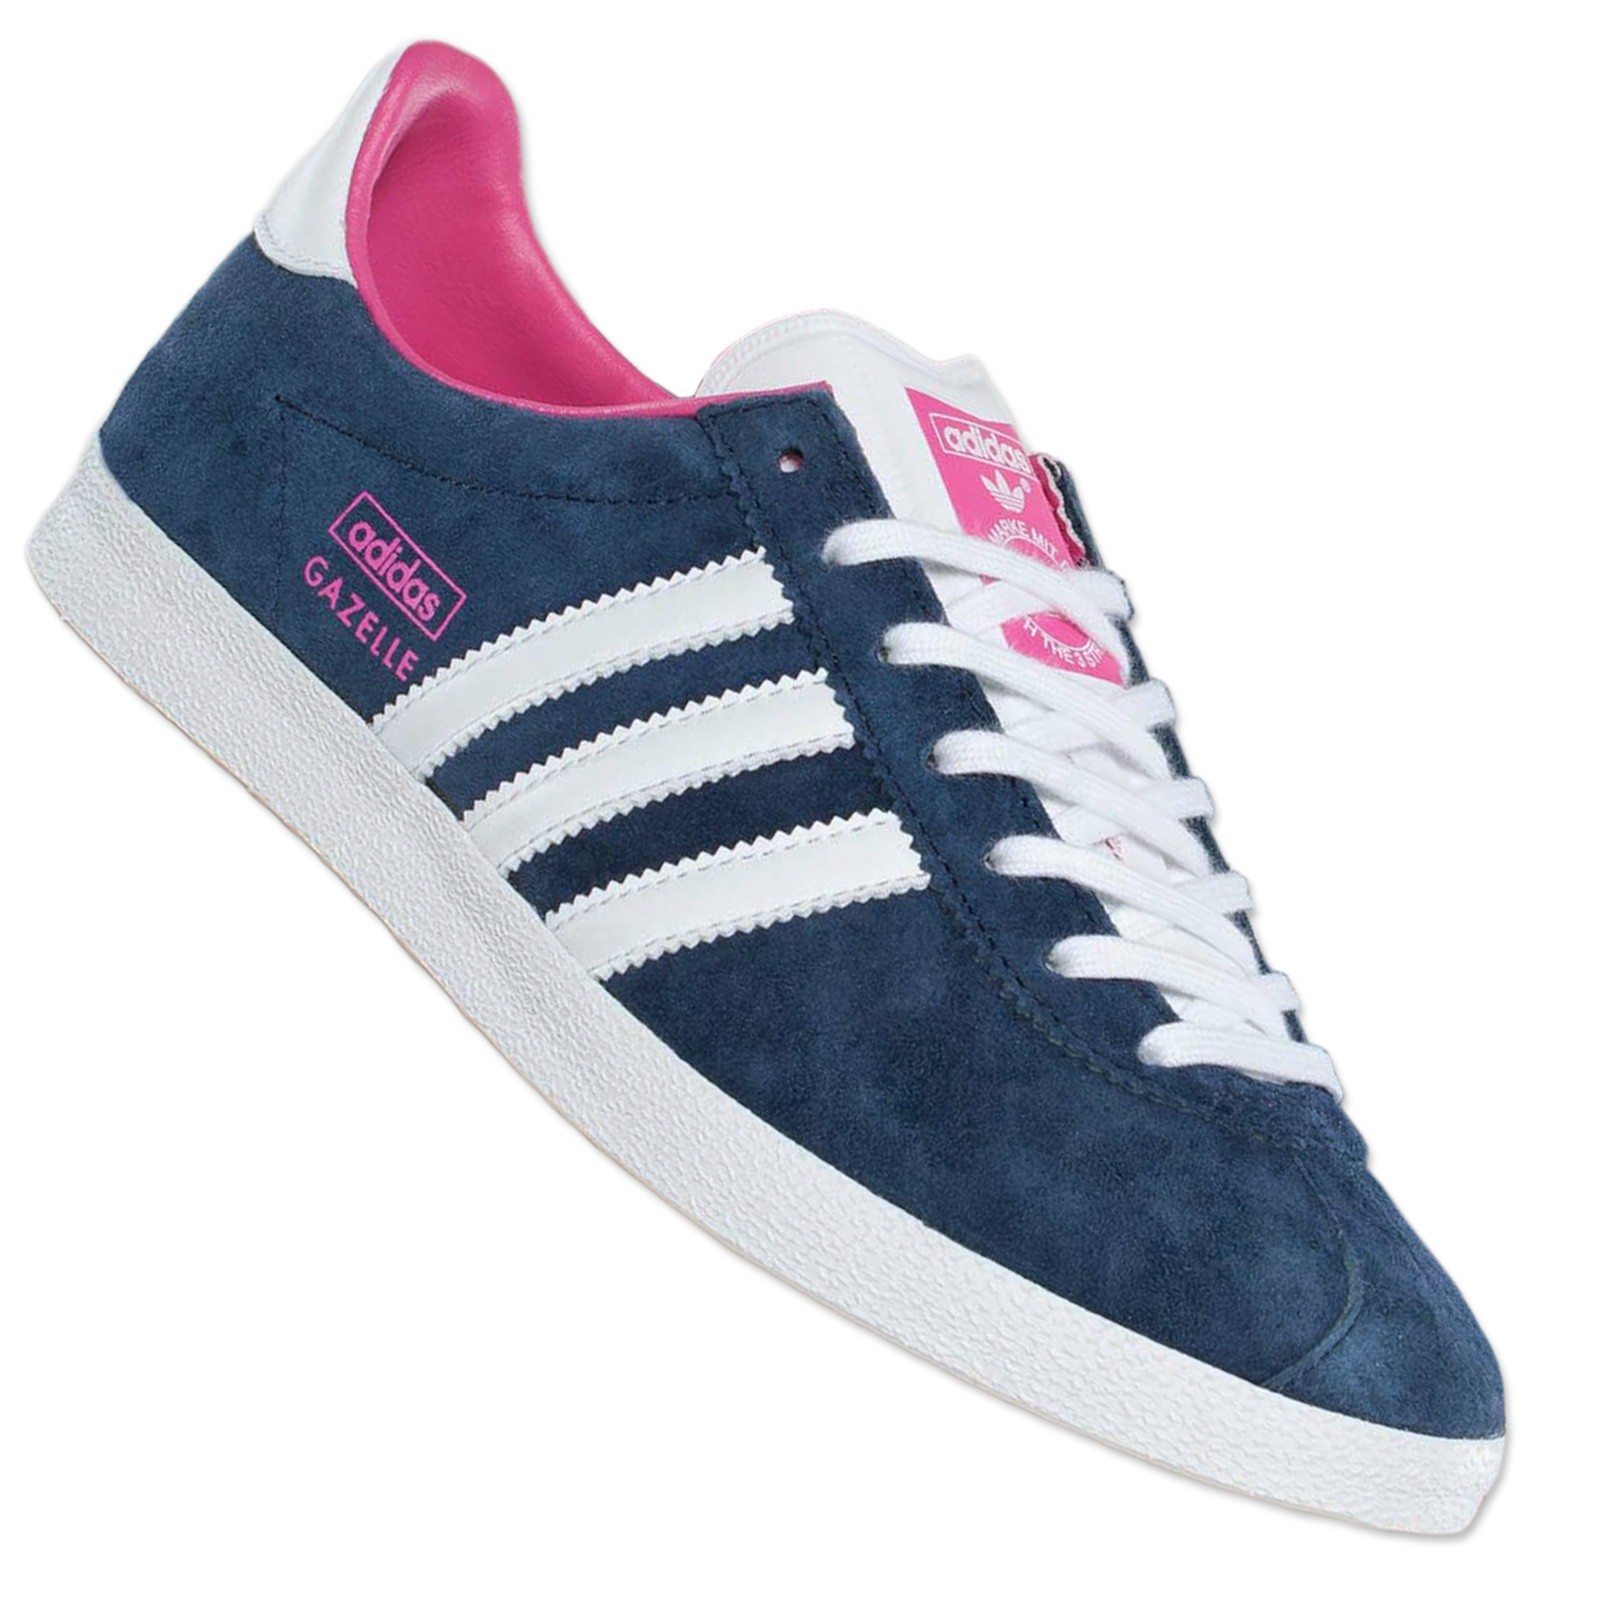 Adidas Originals Gazelle Trainers v25020 Wild Leather Shoes Samba Navy Blue  Pink | eBay